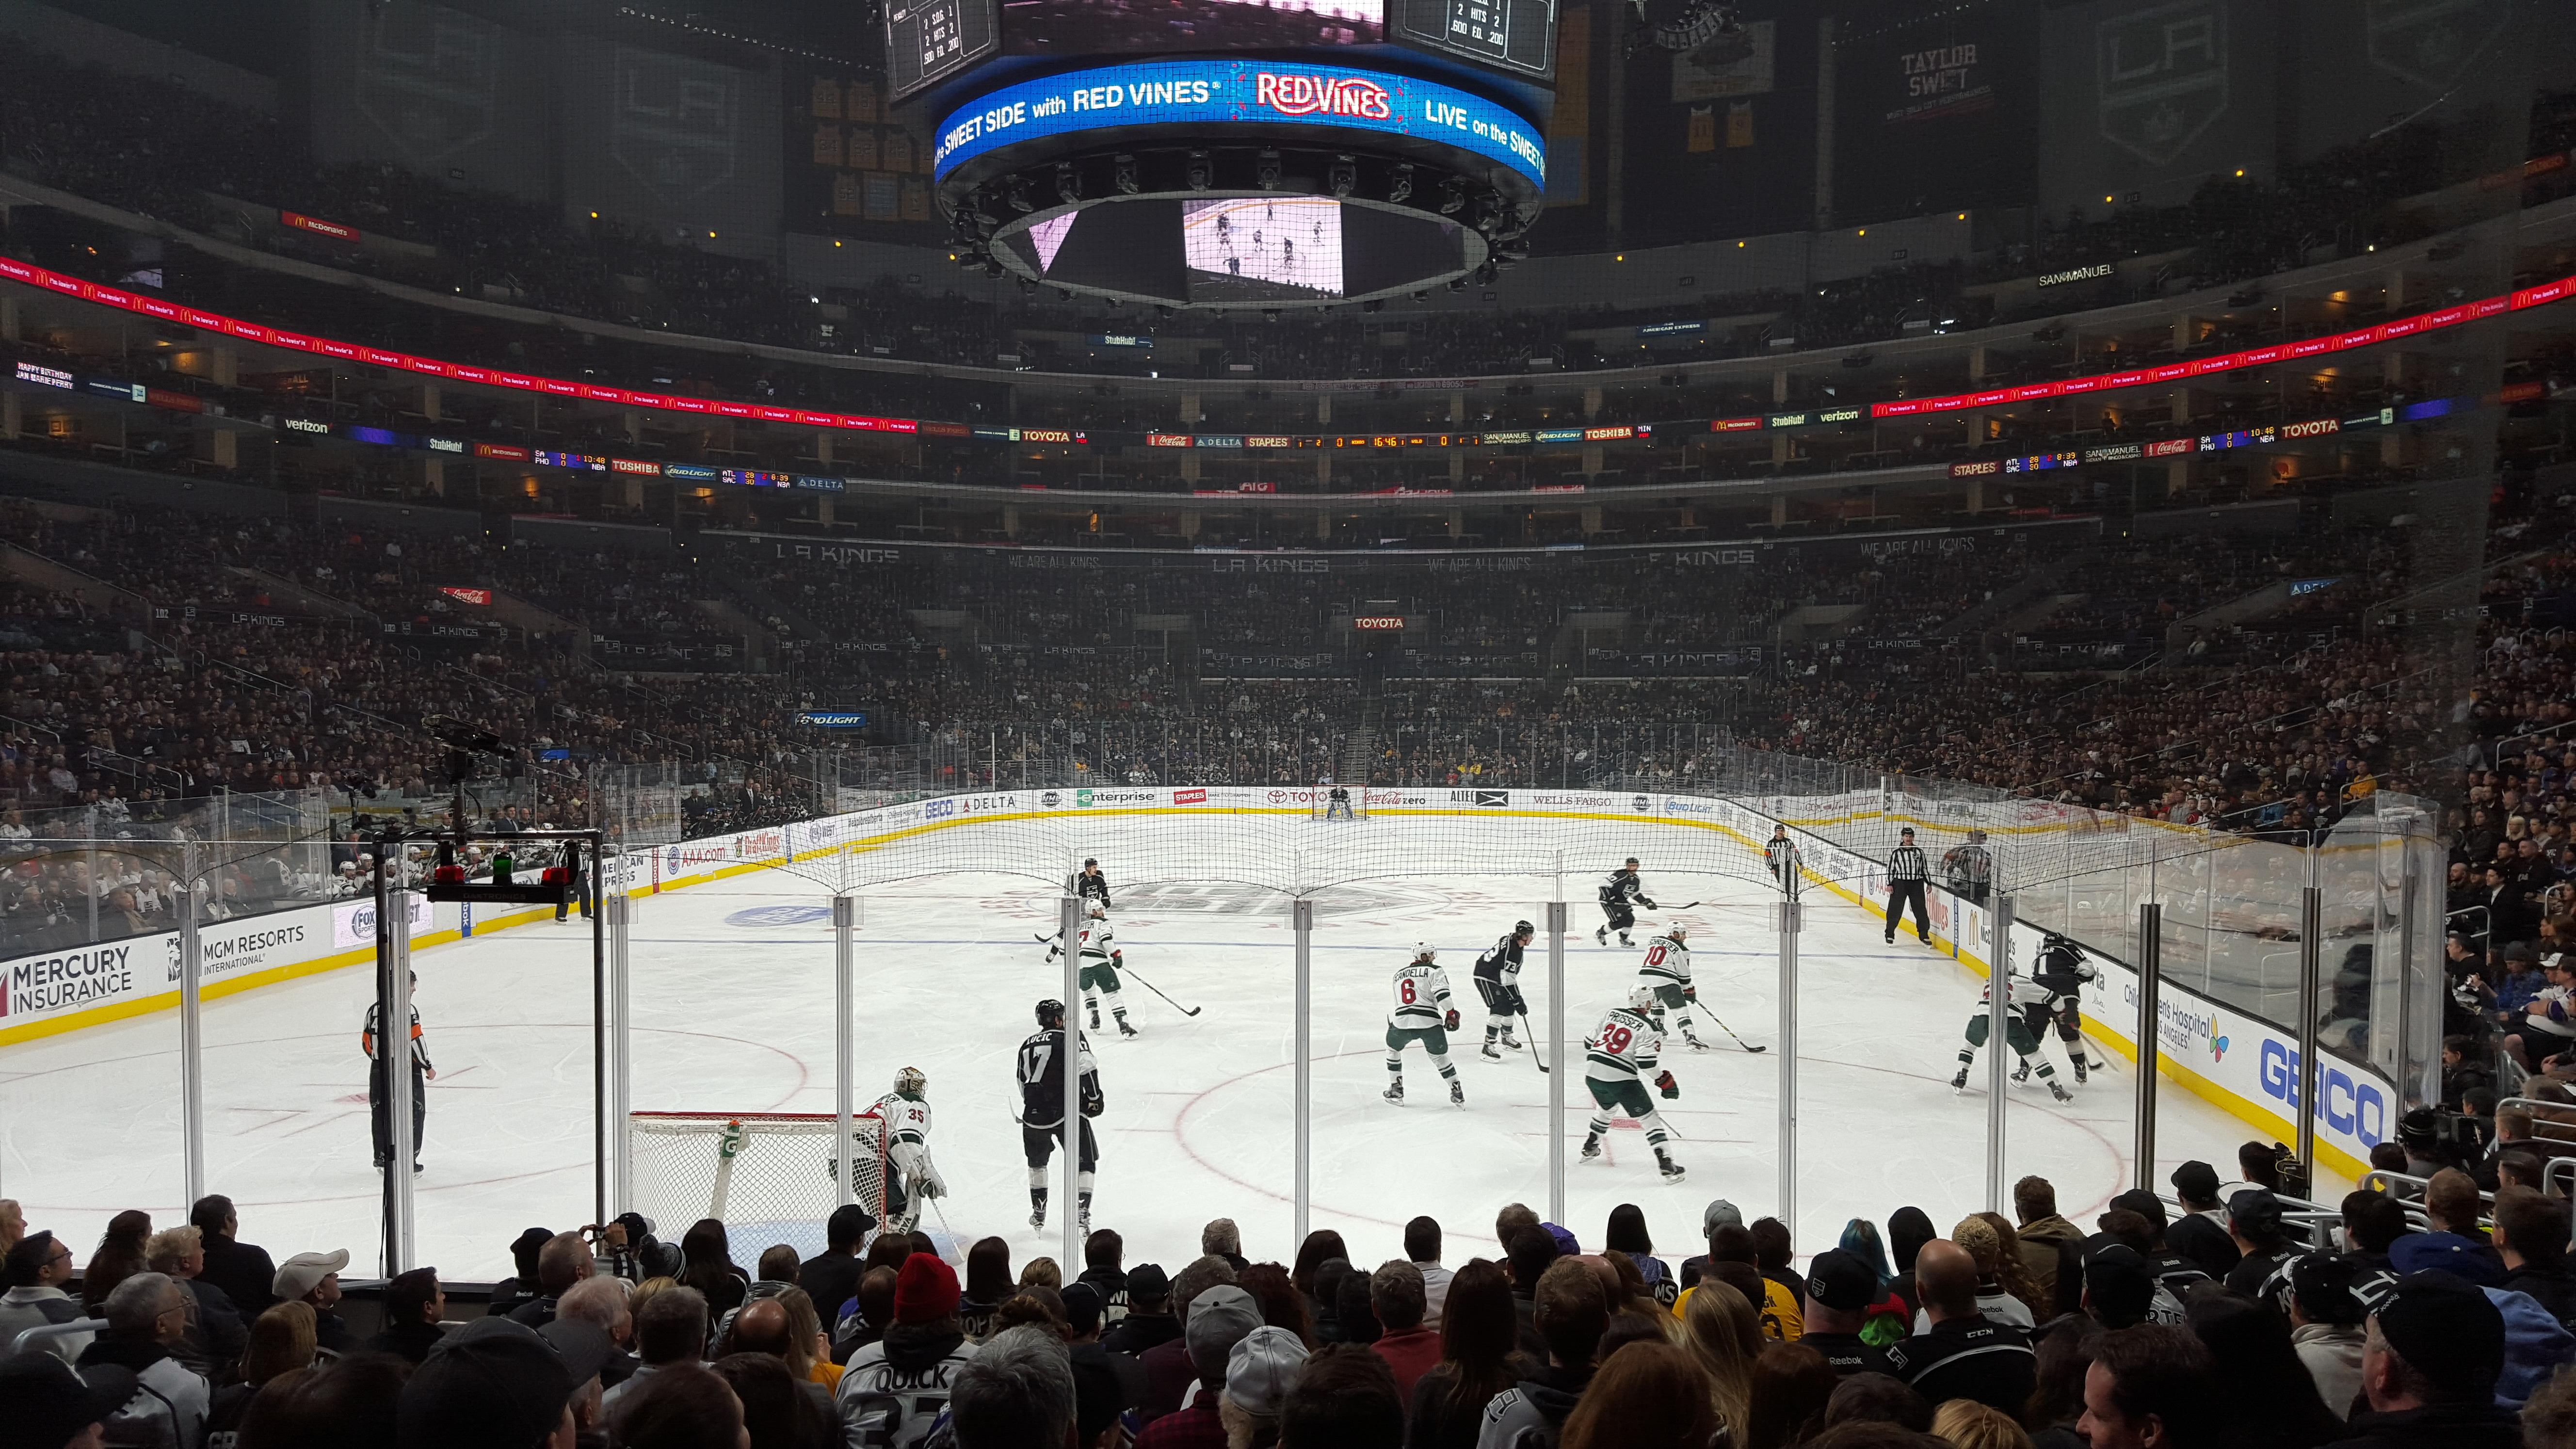 Staples Center Section 115 Row 13 Seat 17